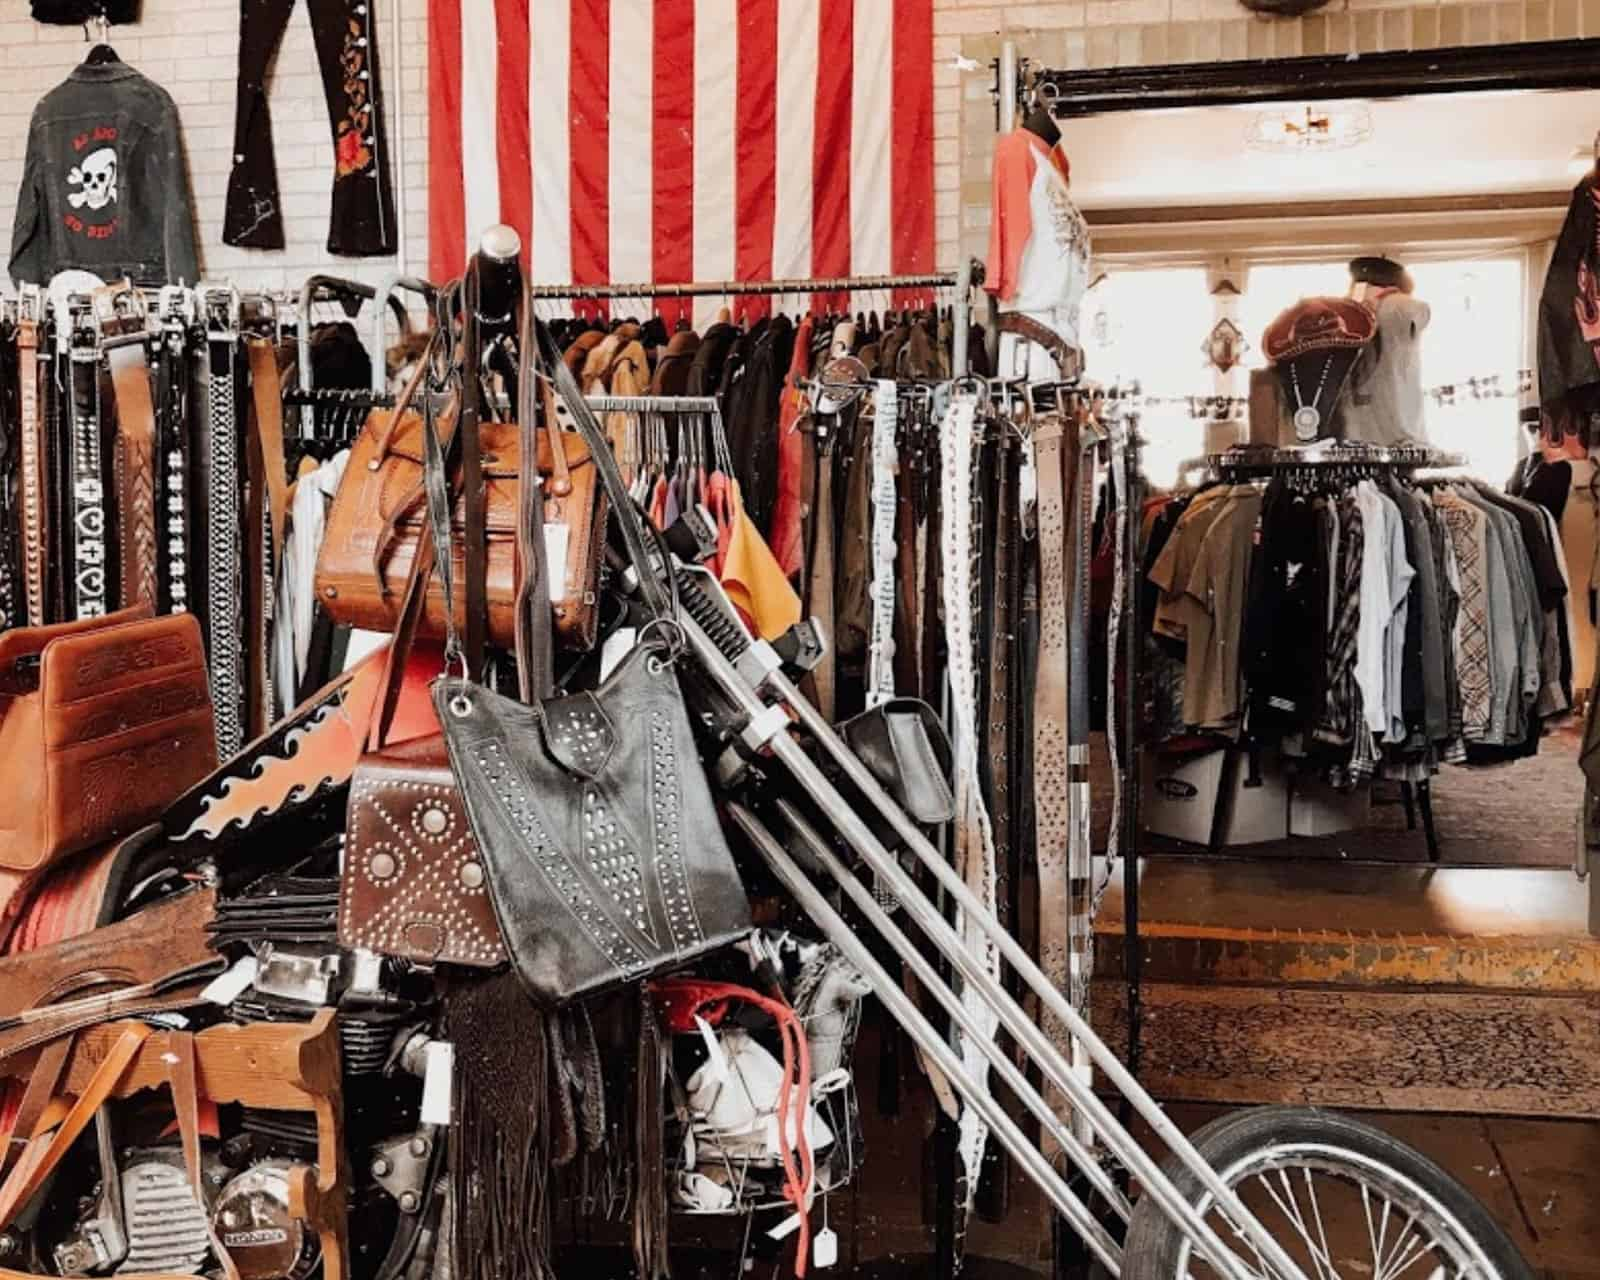 A motorcycle and belts inside Blag Shag vintage store in Nashville